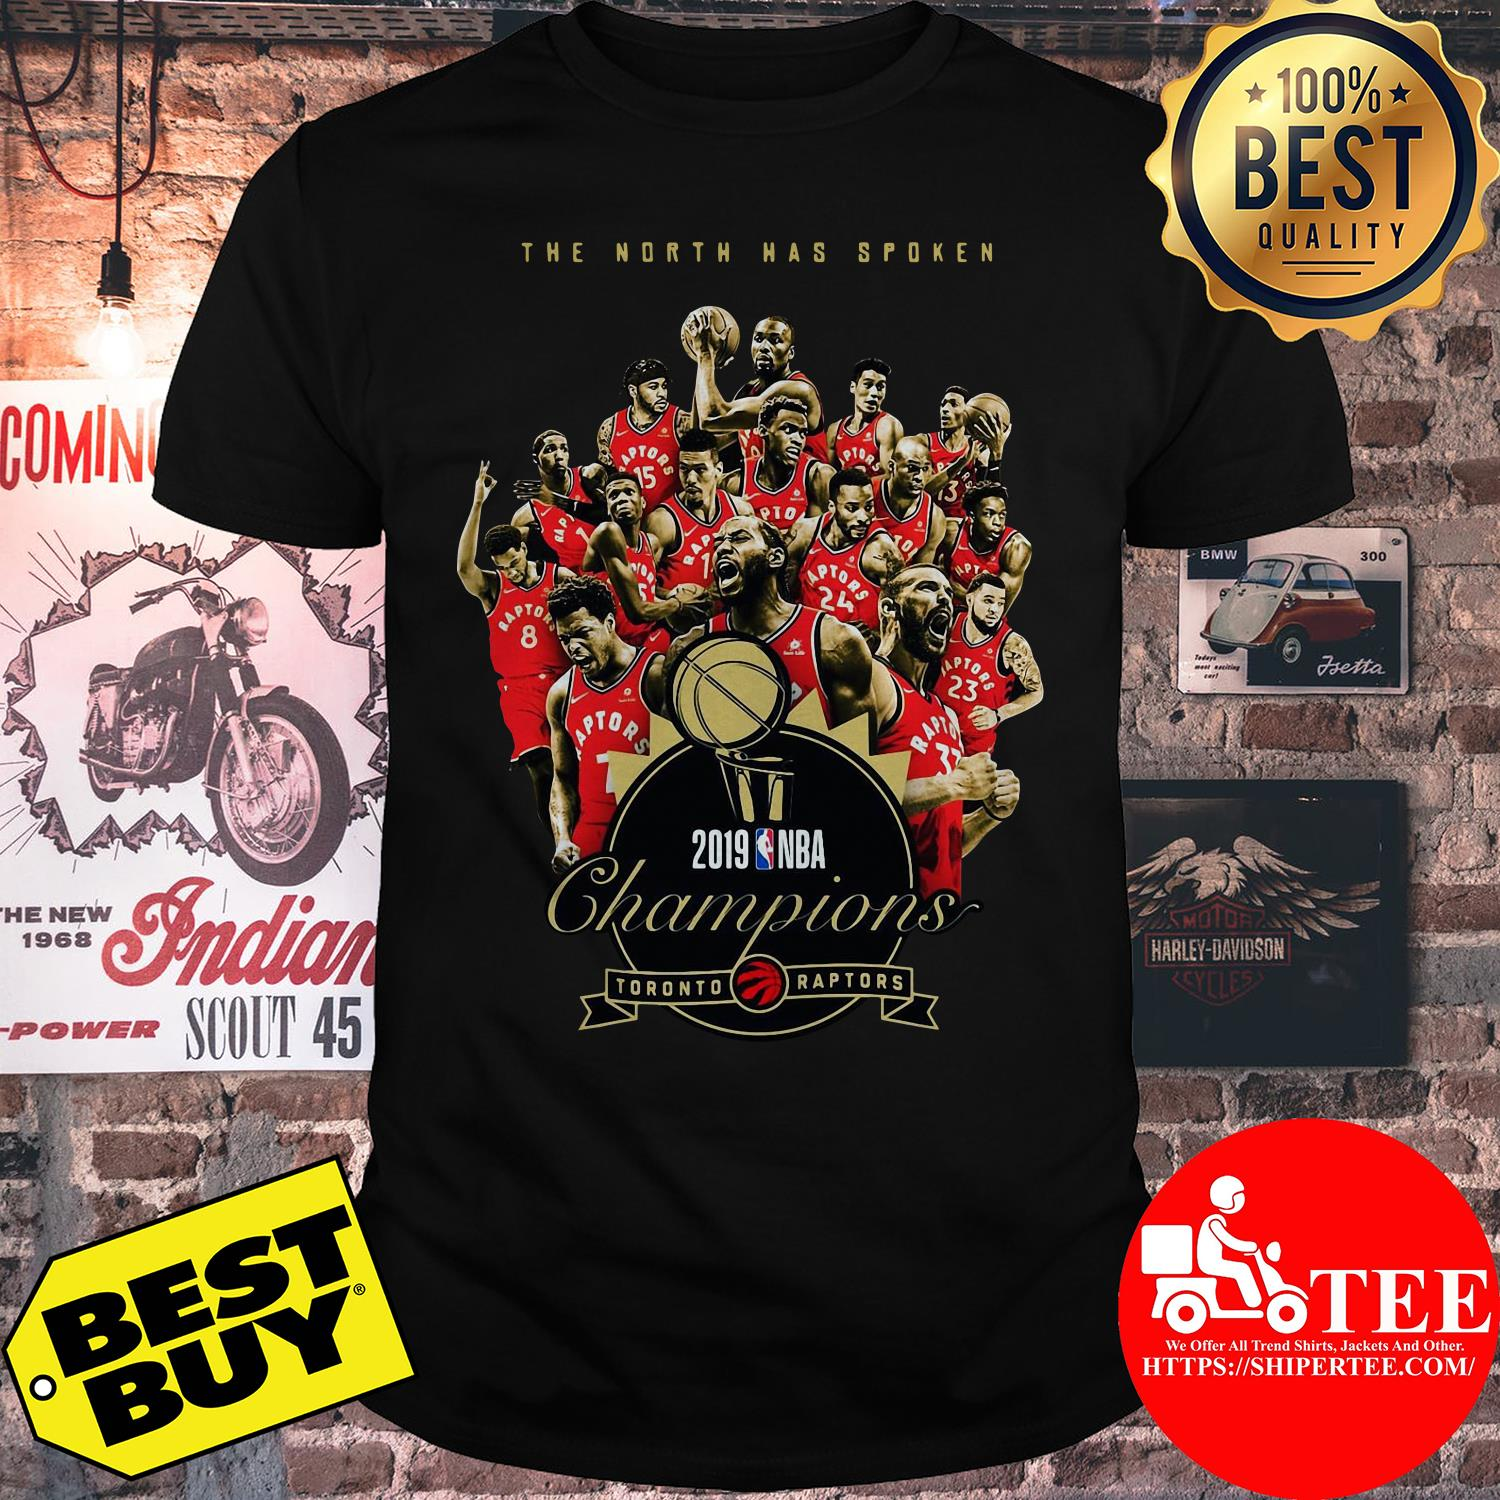 Toronto Raptors The North has spoken 2019 NBA Champions shirt